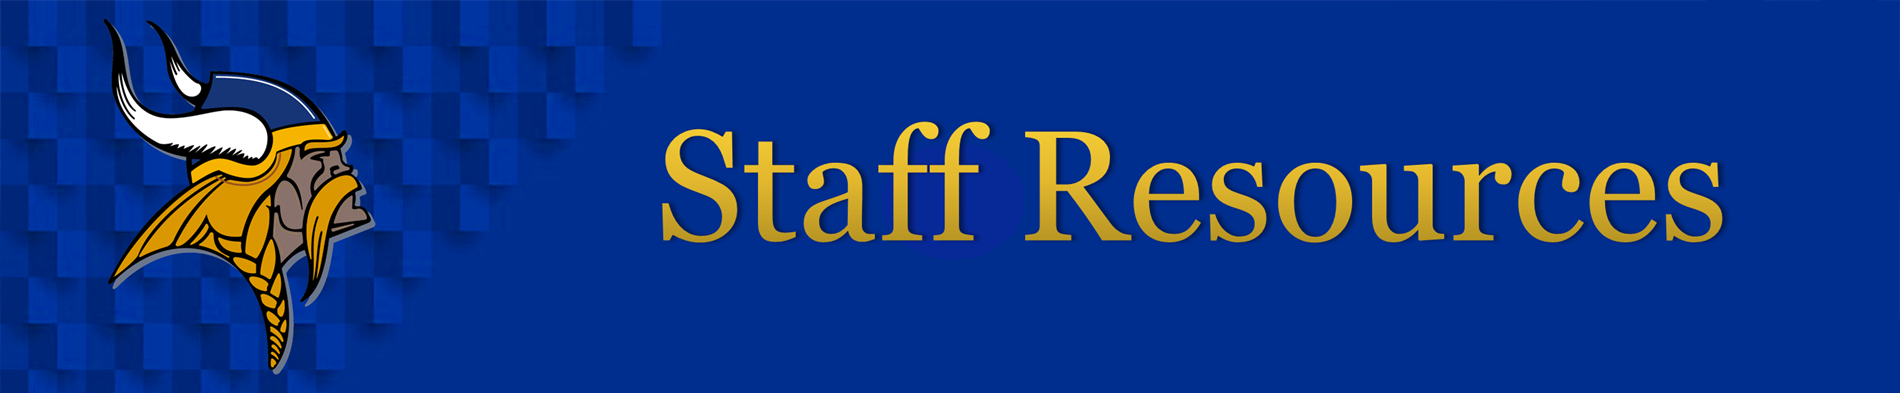 Staff resources page